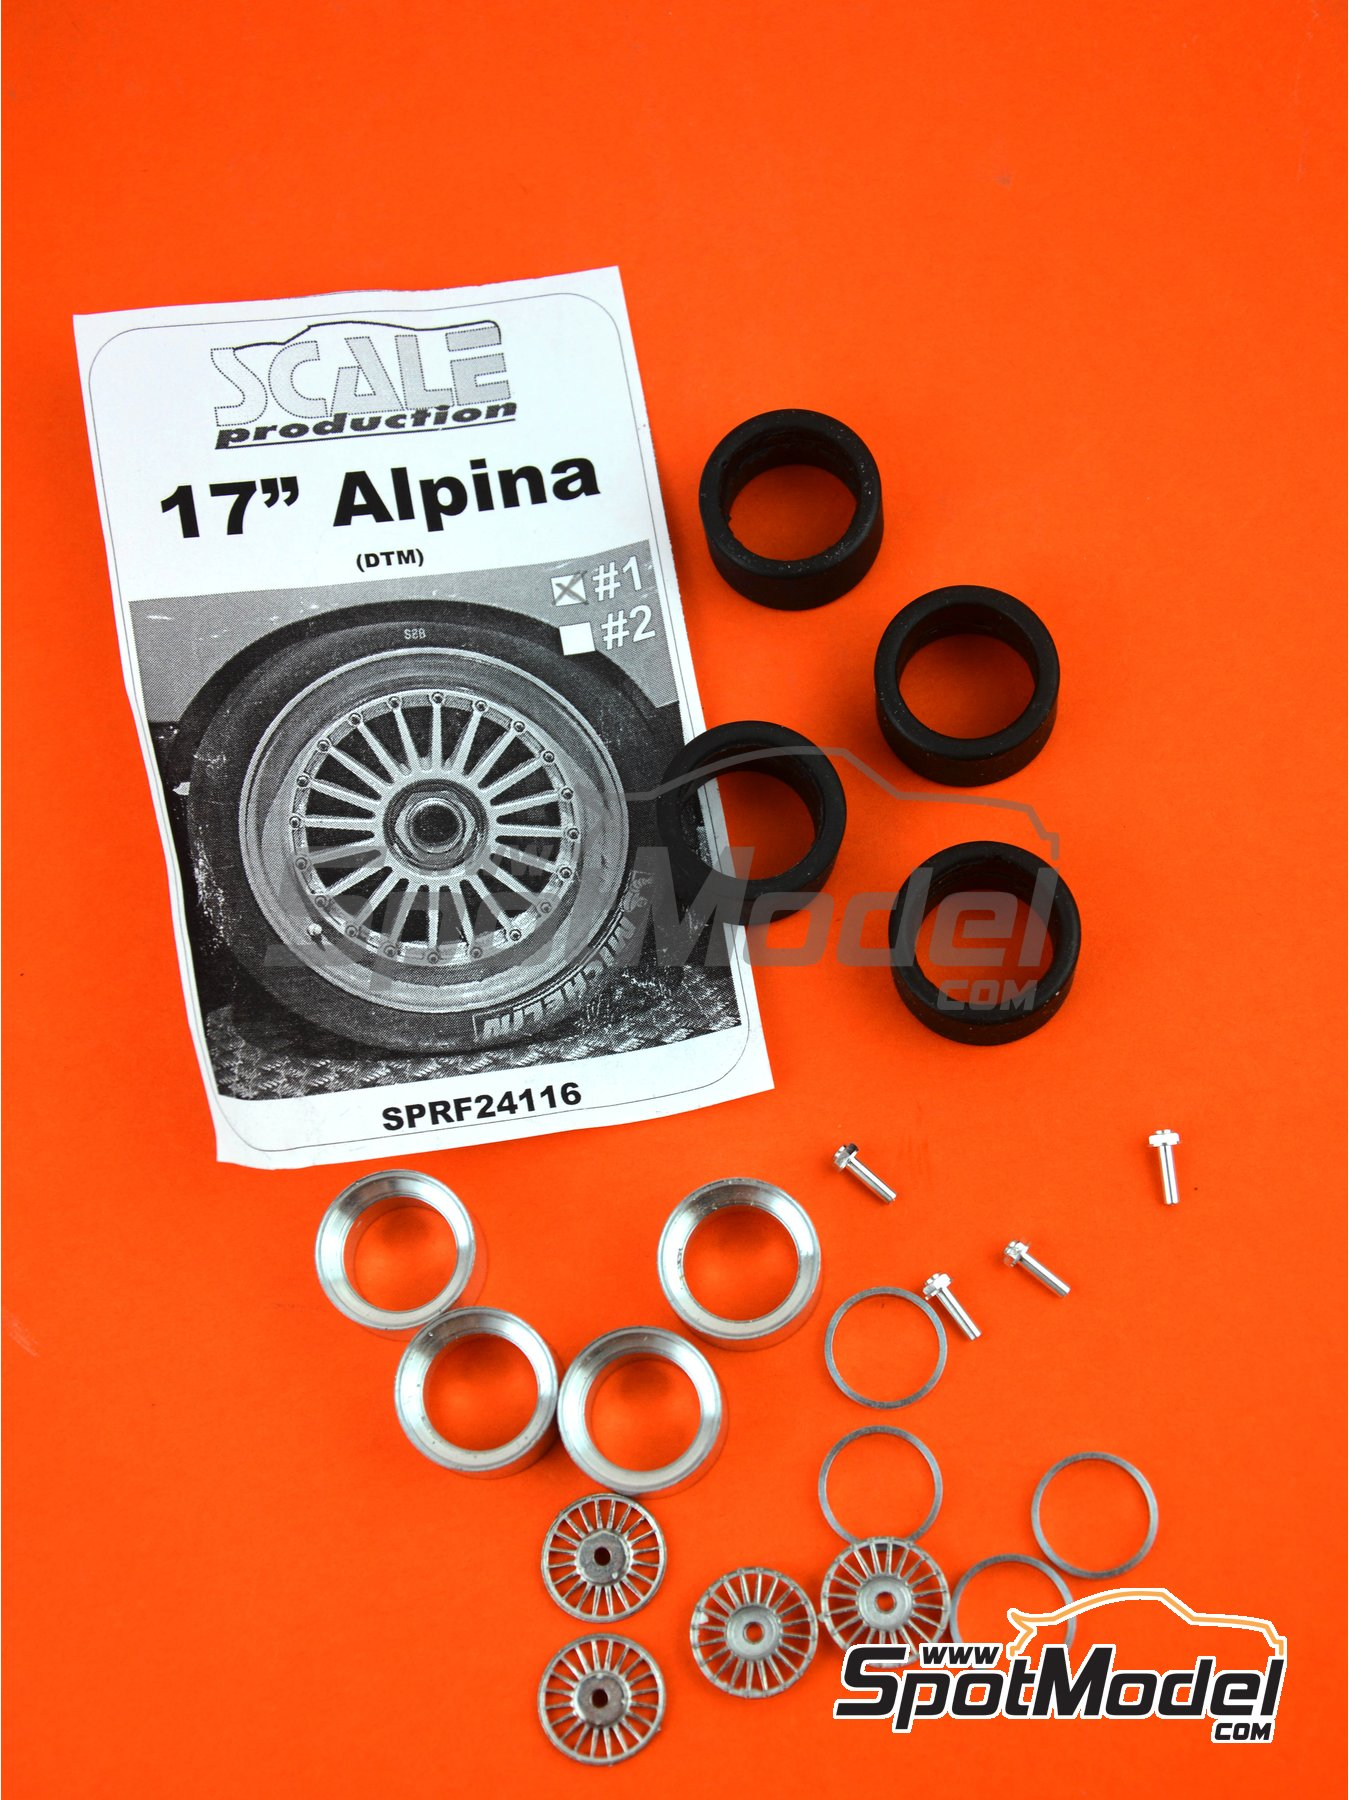 Alpina 17 inches DTM | Rims and tyres set in 1/24 scale manufactured by Scale Production (ref. SPRF24116-1) image